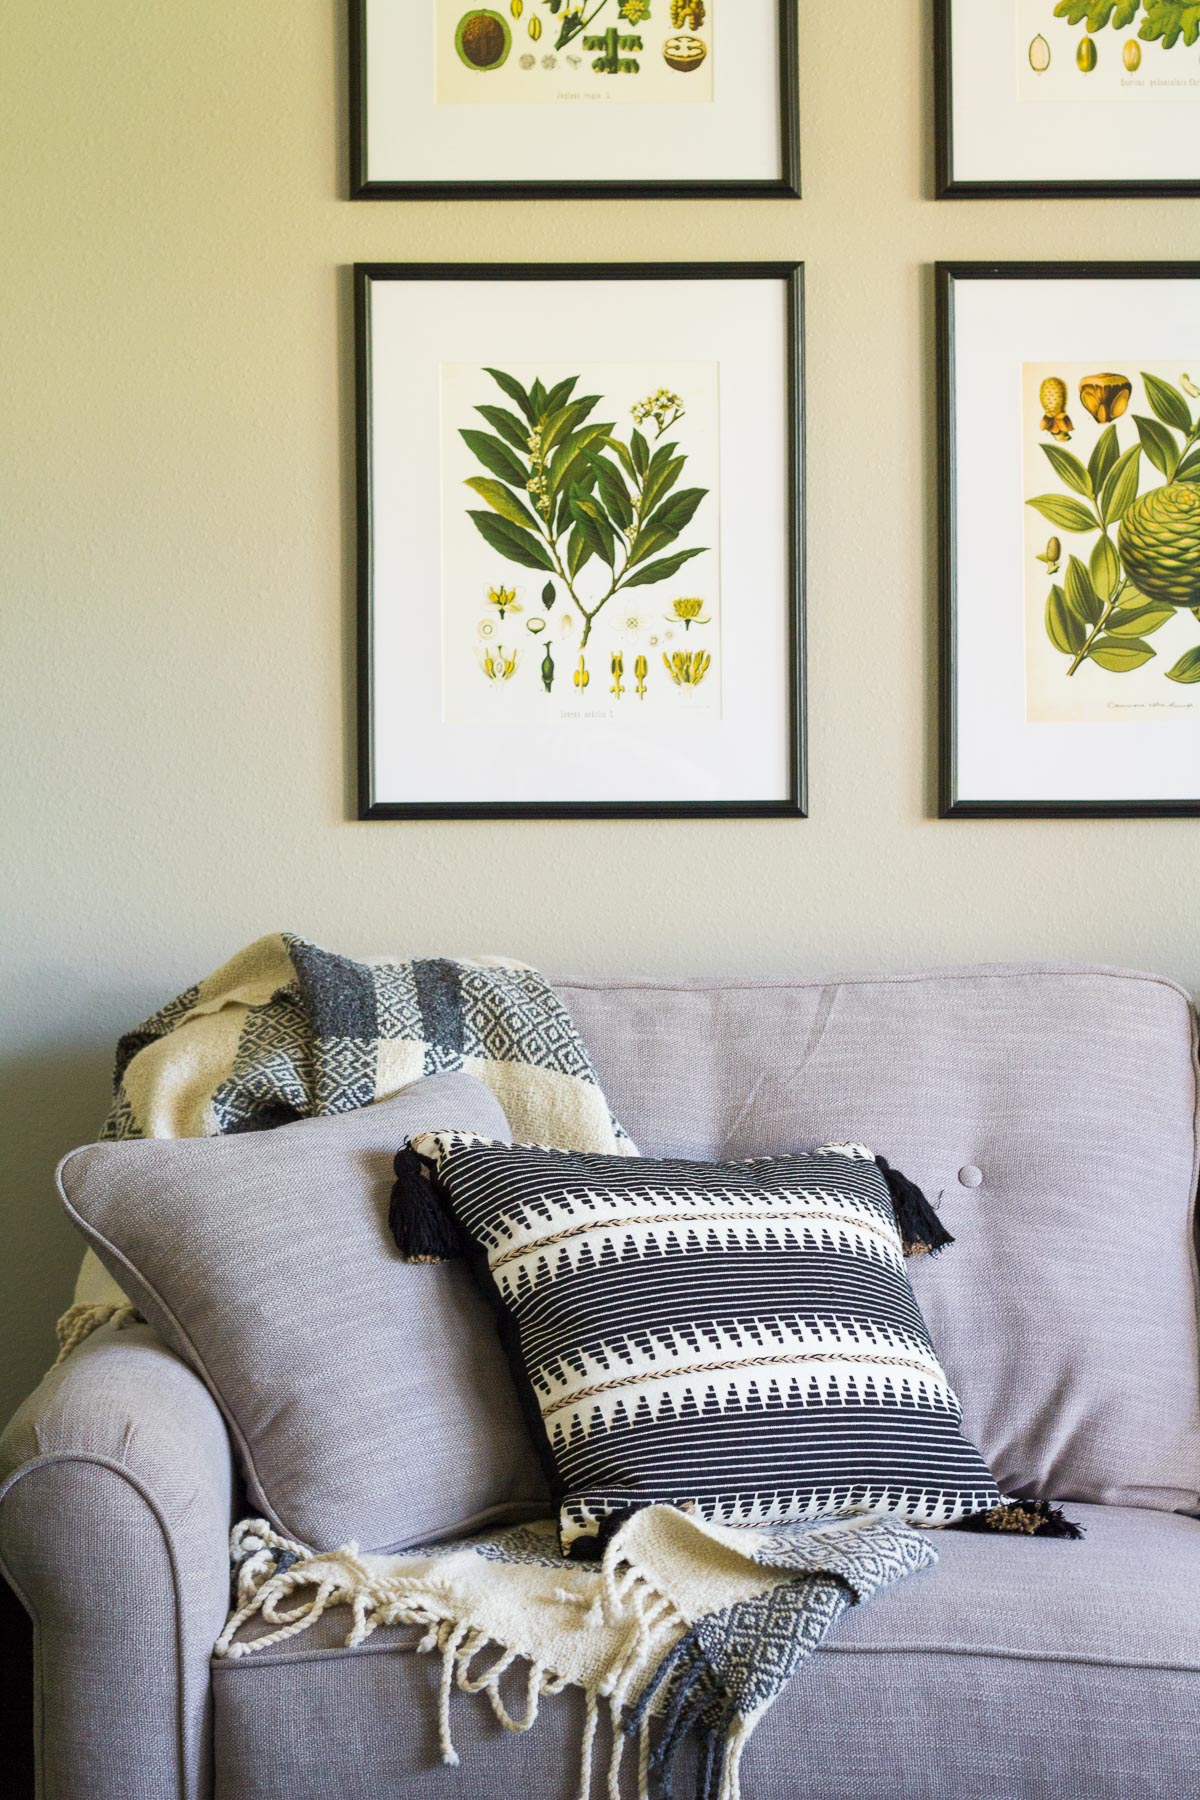 Botanical prints arranged in a grid above a gray couch; black and white accent pillows